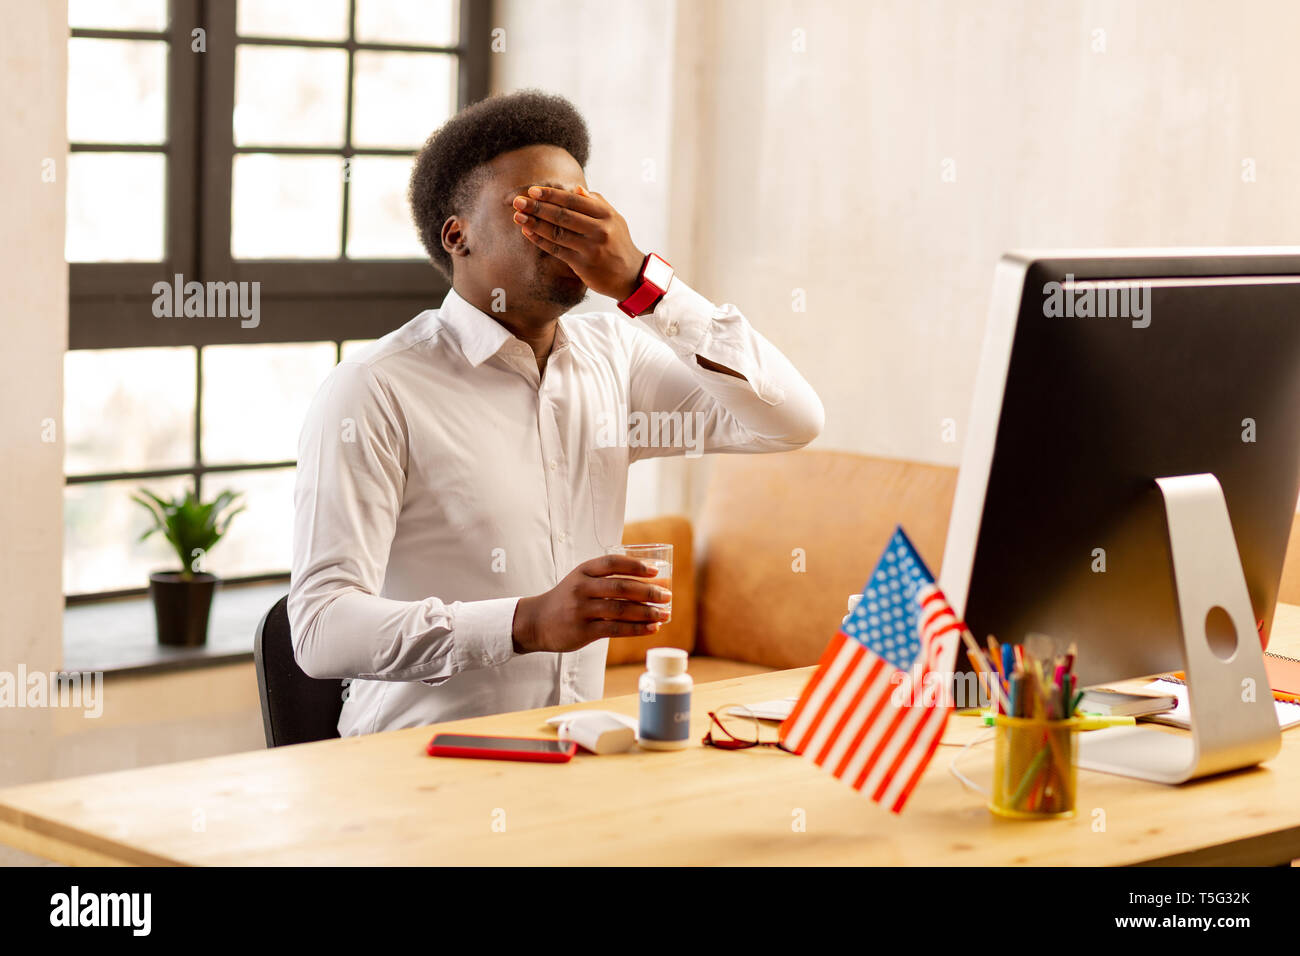 Nice good looking man taking his medicine - Stock Image